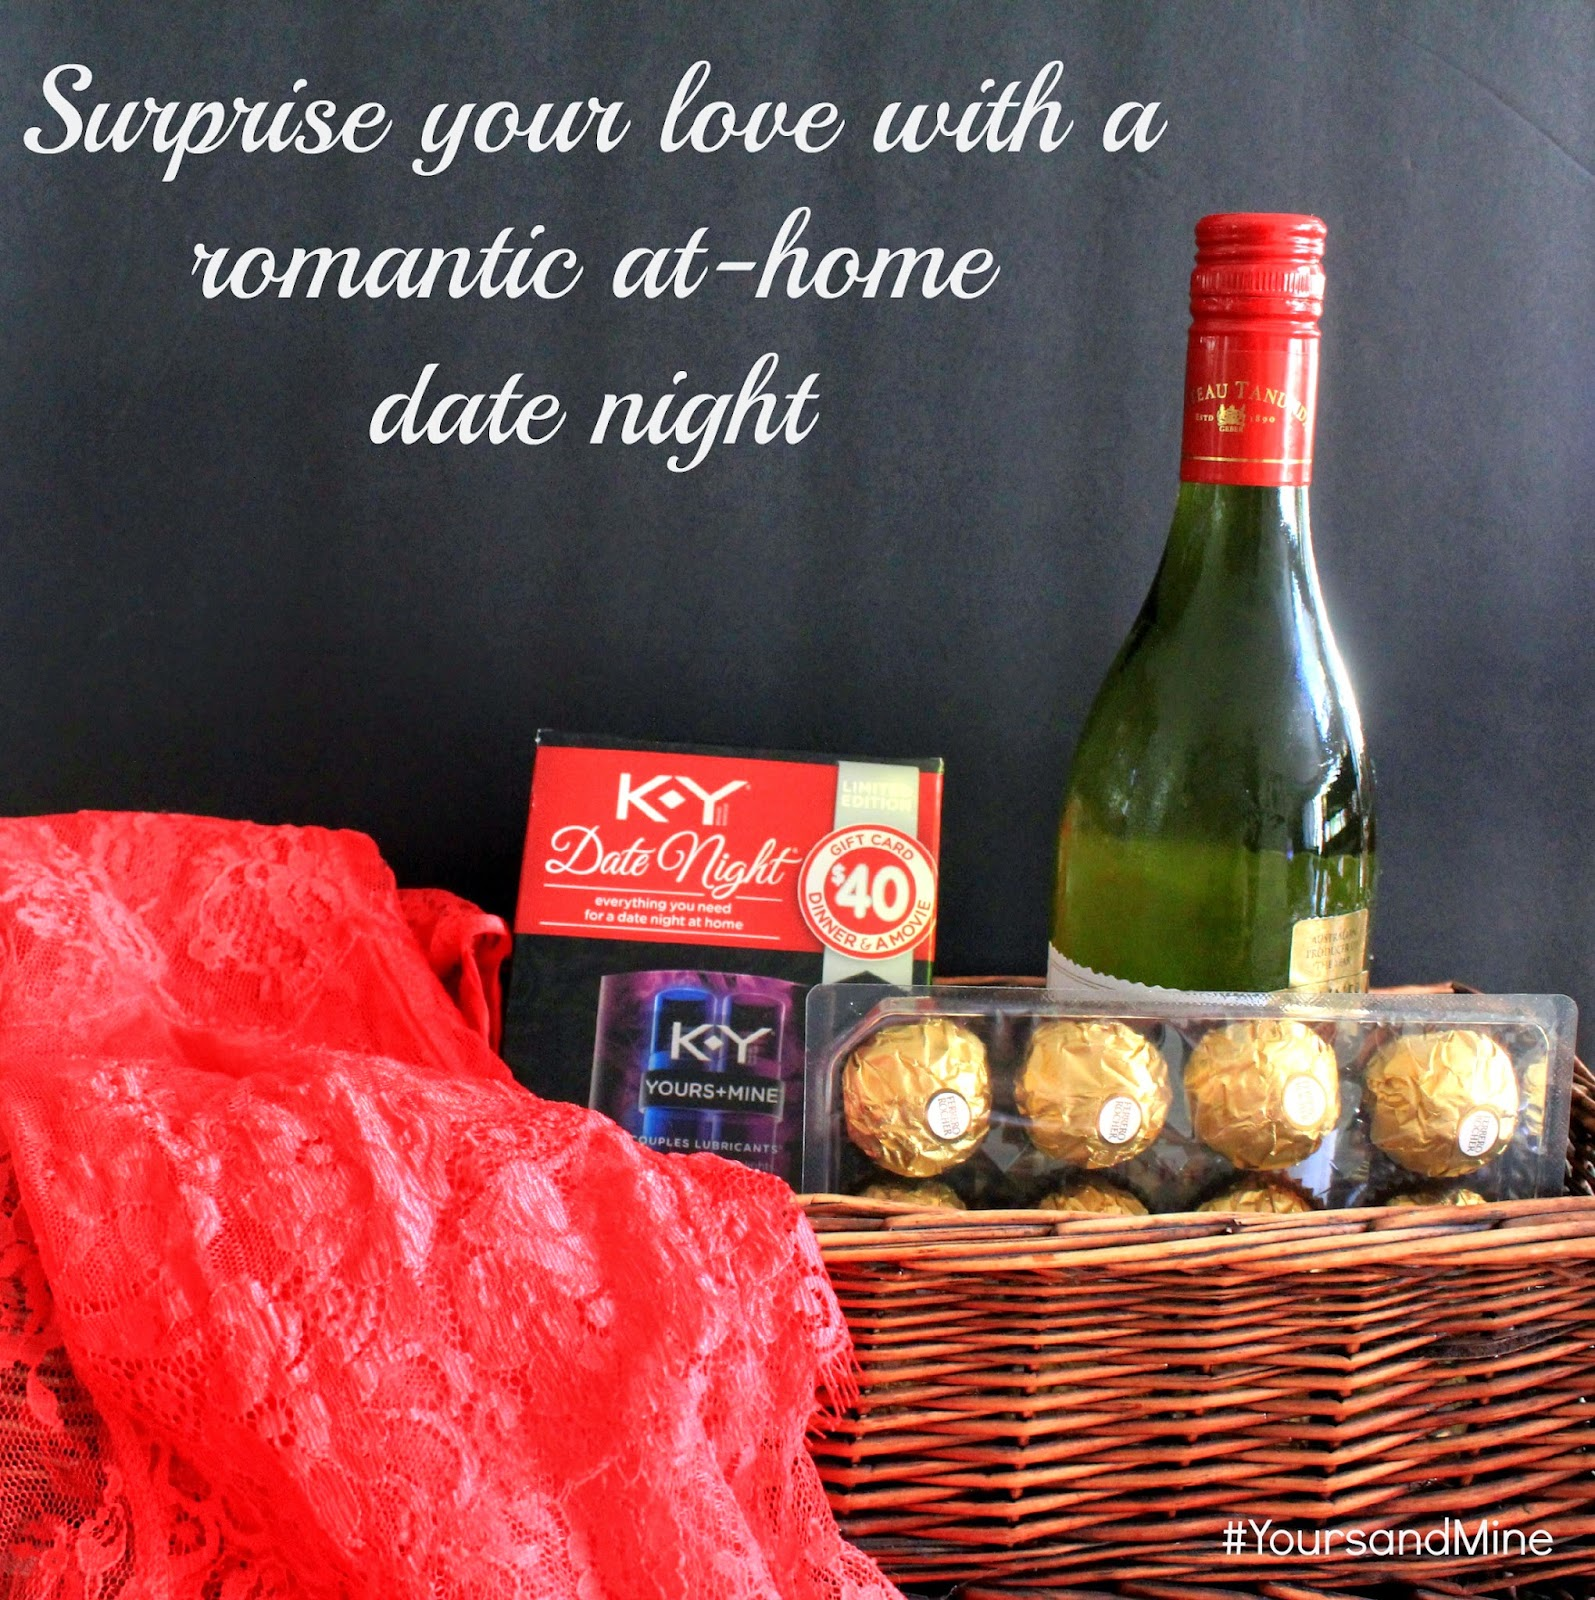 Surprise your love with a romantic st-home date night! #YoursandMine #ad